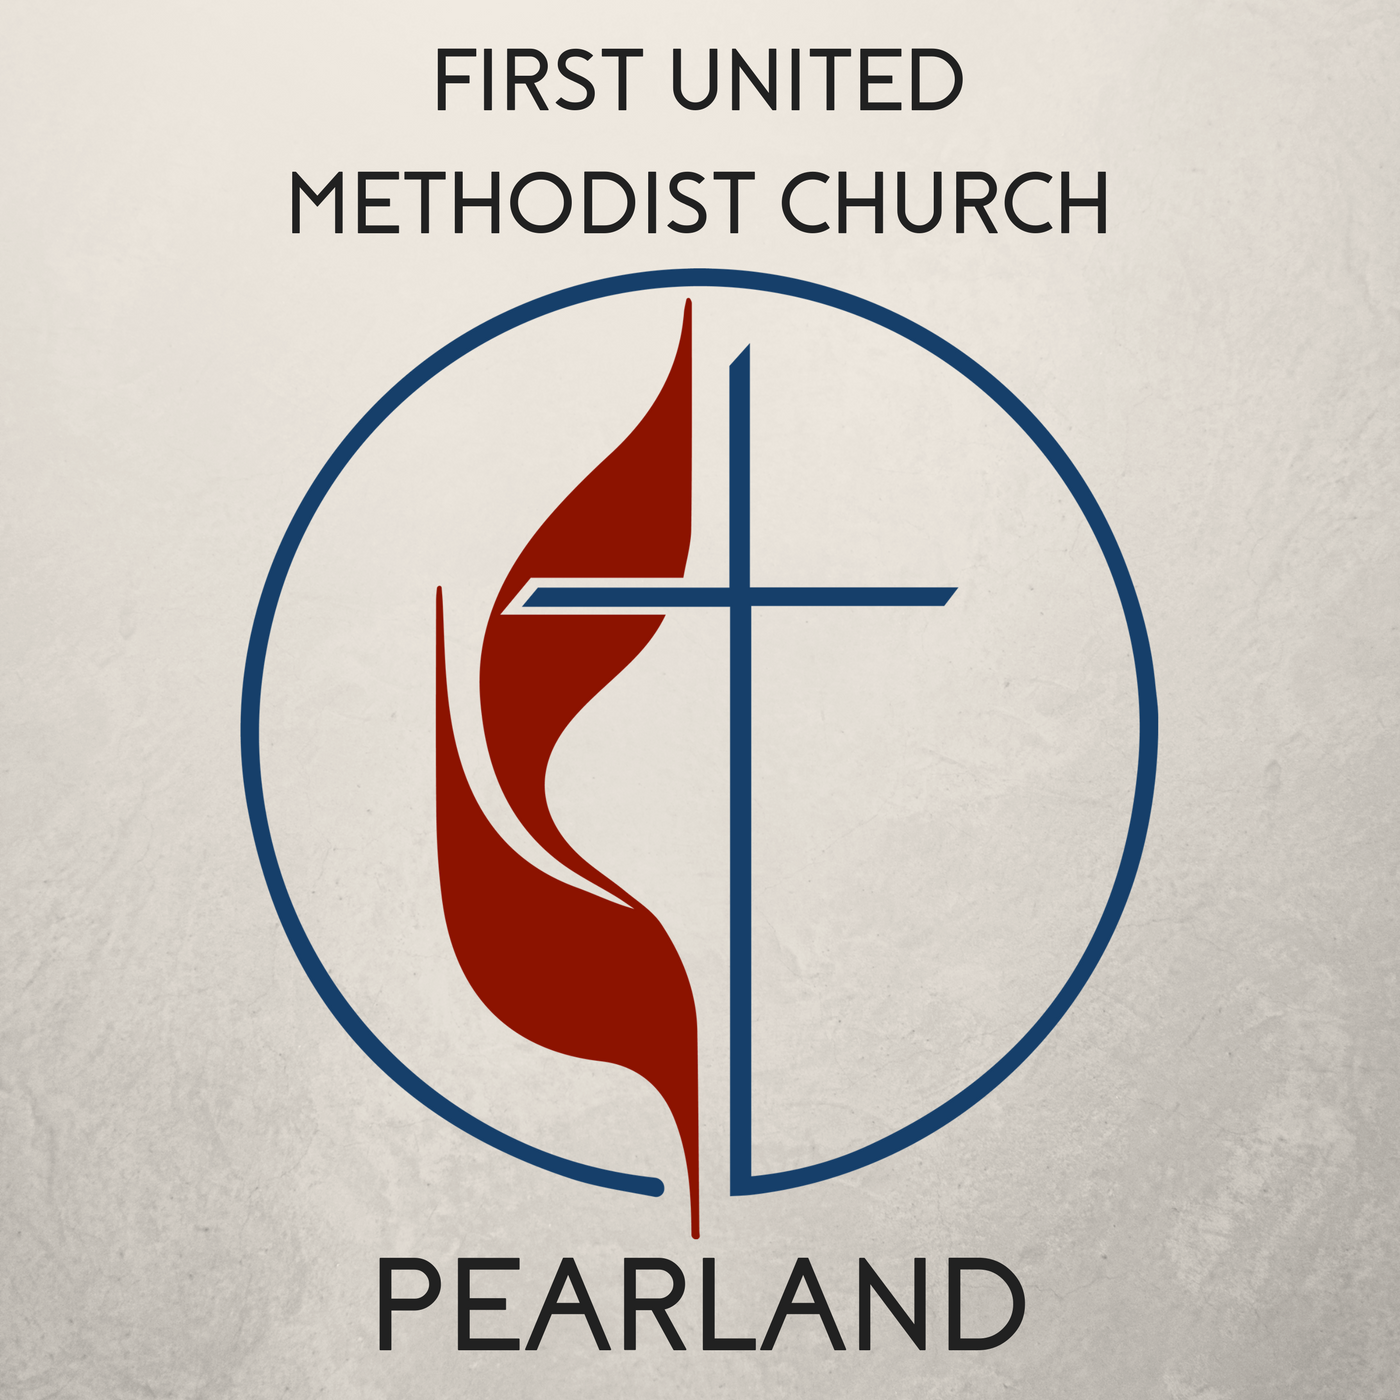 FUMC Pearland on itunes(1) image